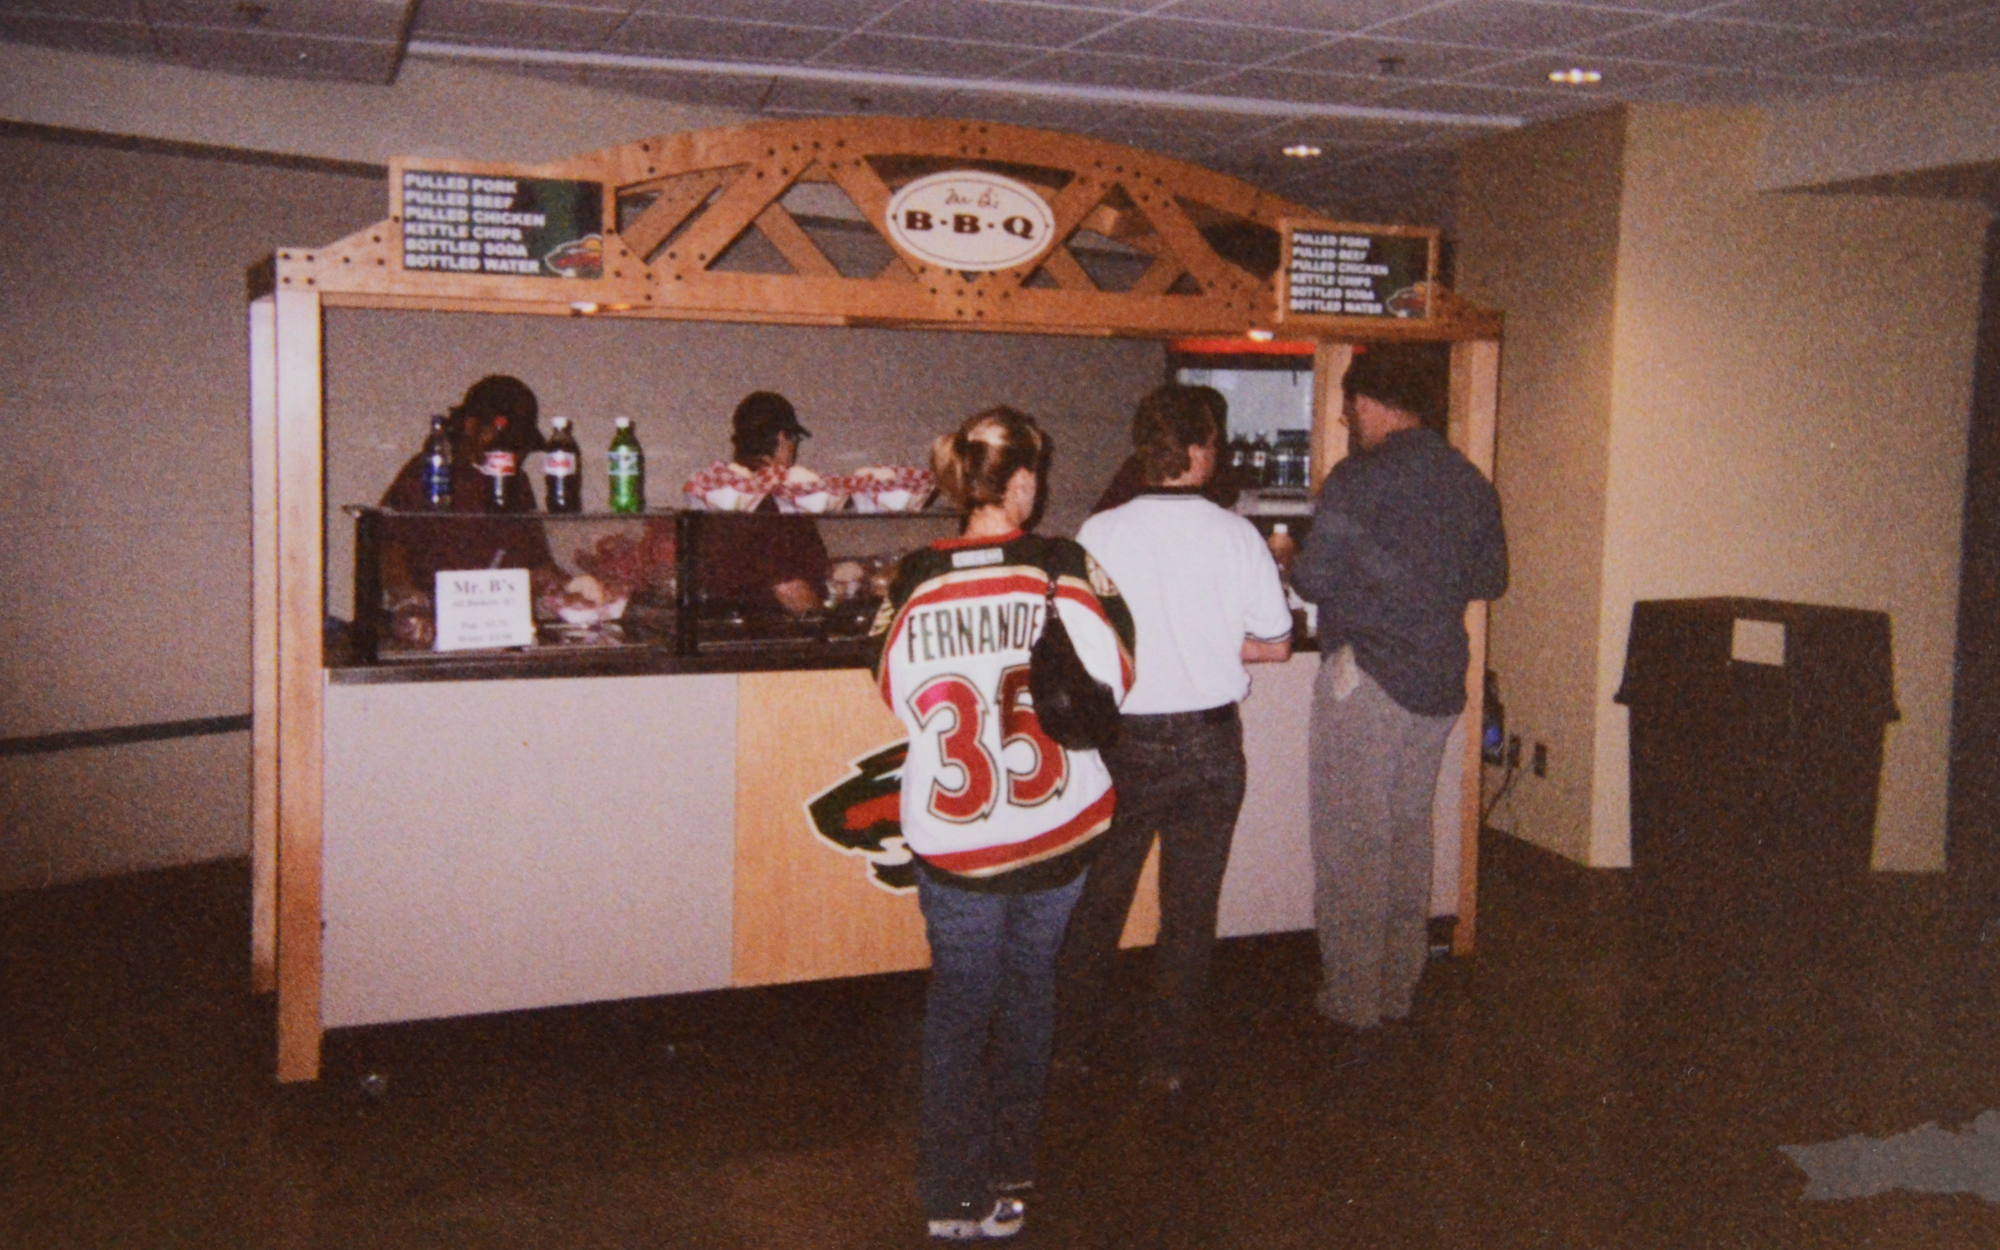 Mr. B food stand with Wild fans